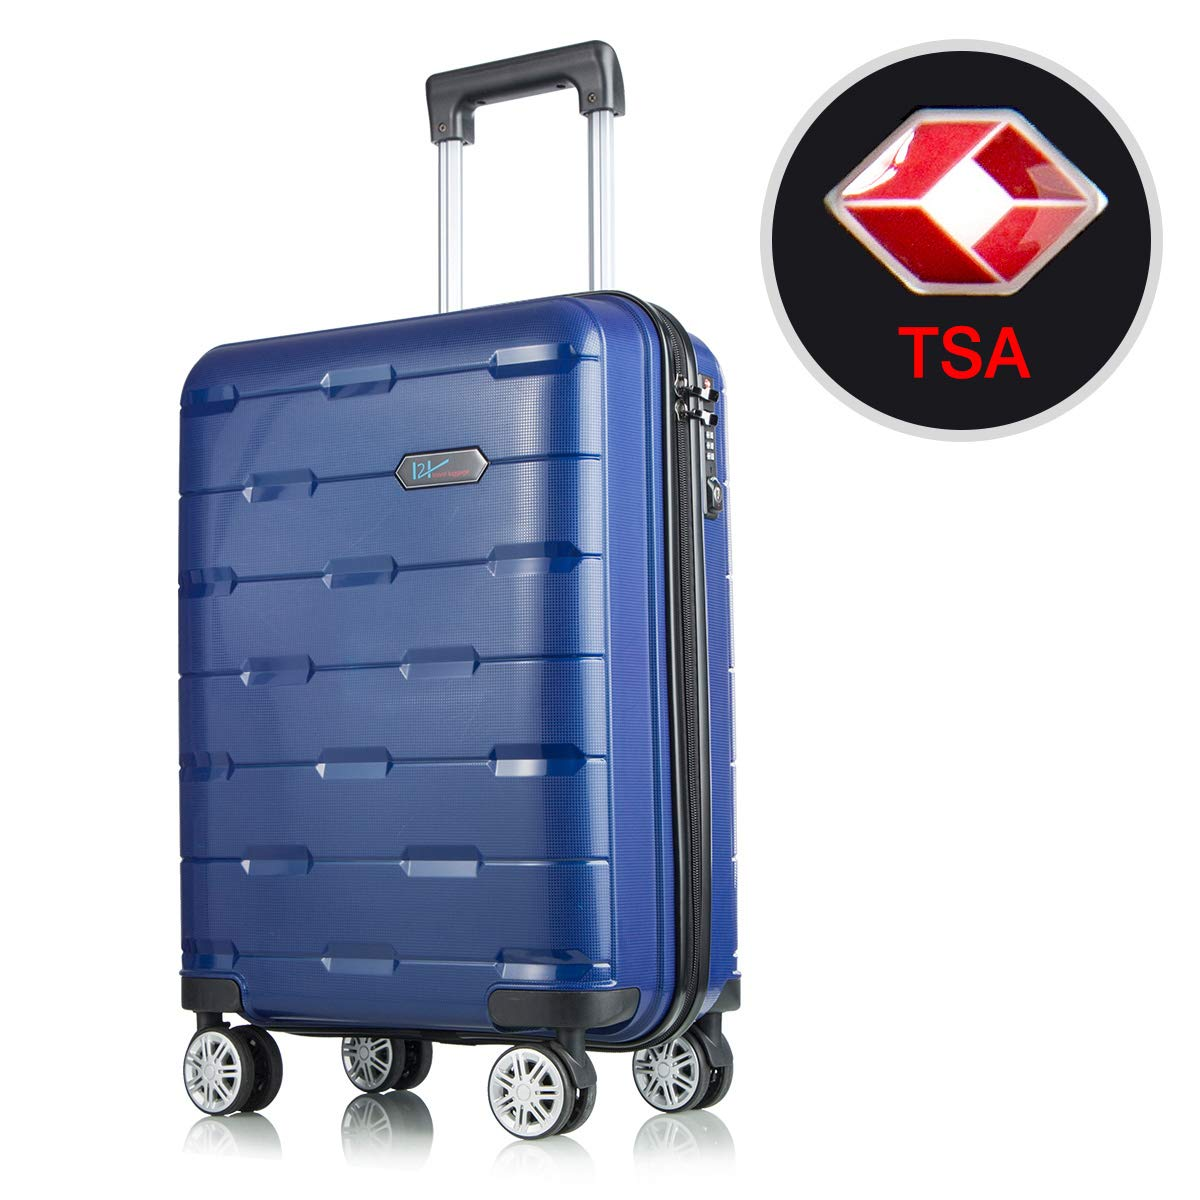 WELOVE Lightweight Luggage Sets Hardside Spinner Trolley Expandable Luggage Bag for Travel and Business Luggage Set 24'' (Royal Blue)